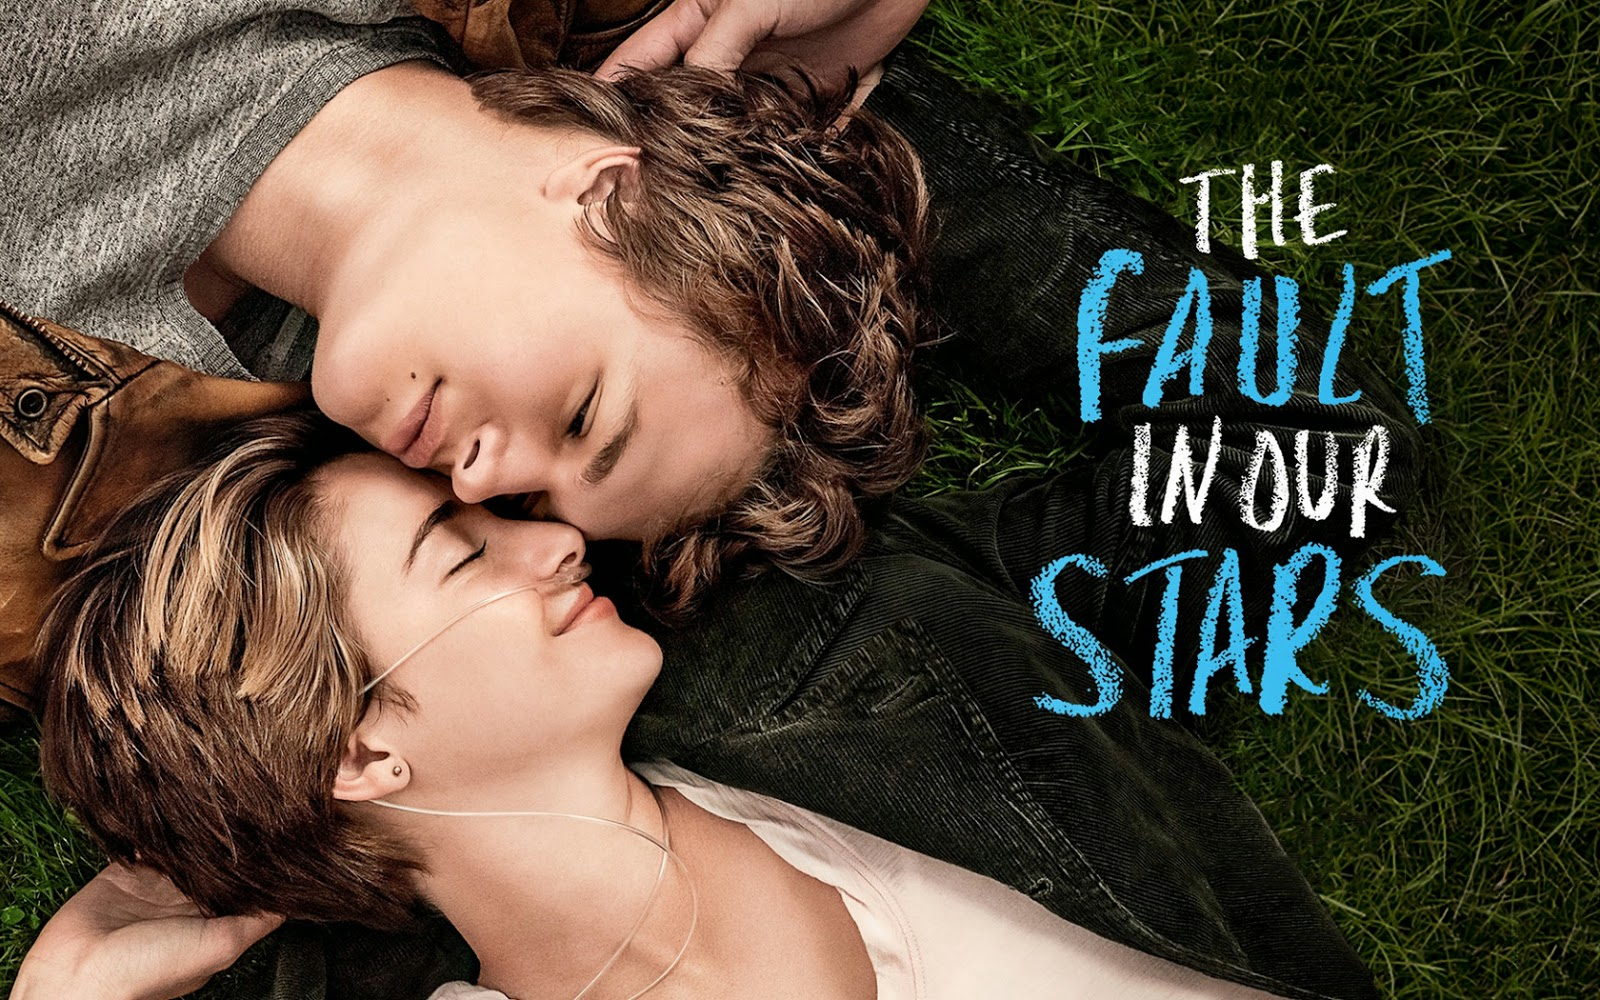 OR The Fault in Our Stars 2014 movie Wallpaper 1680x1050 1